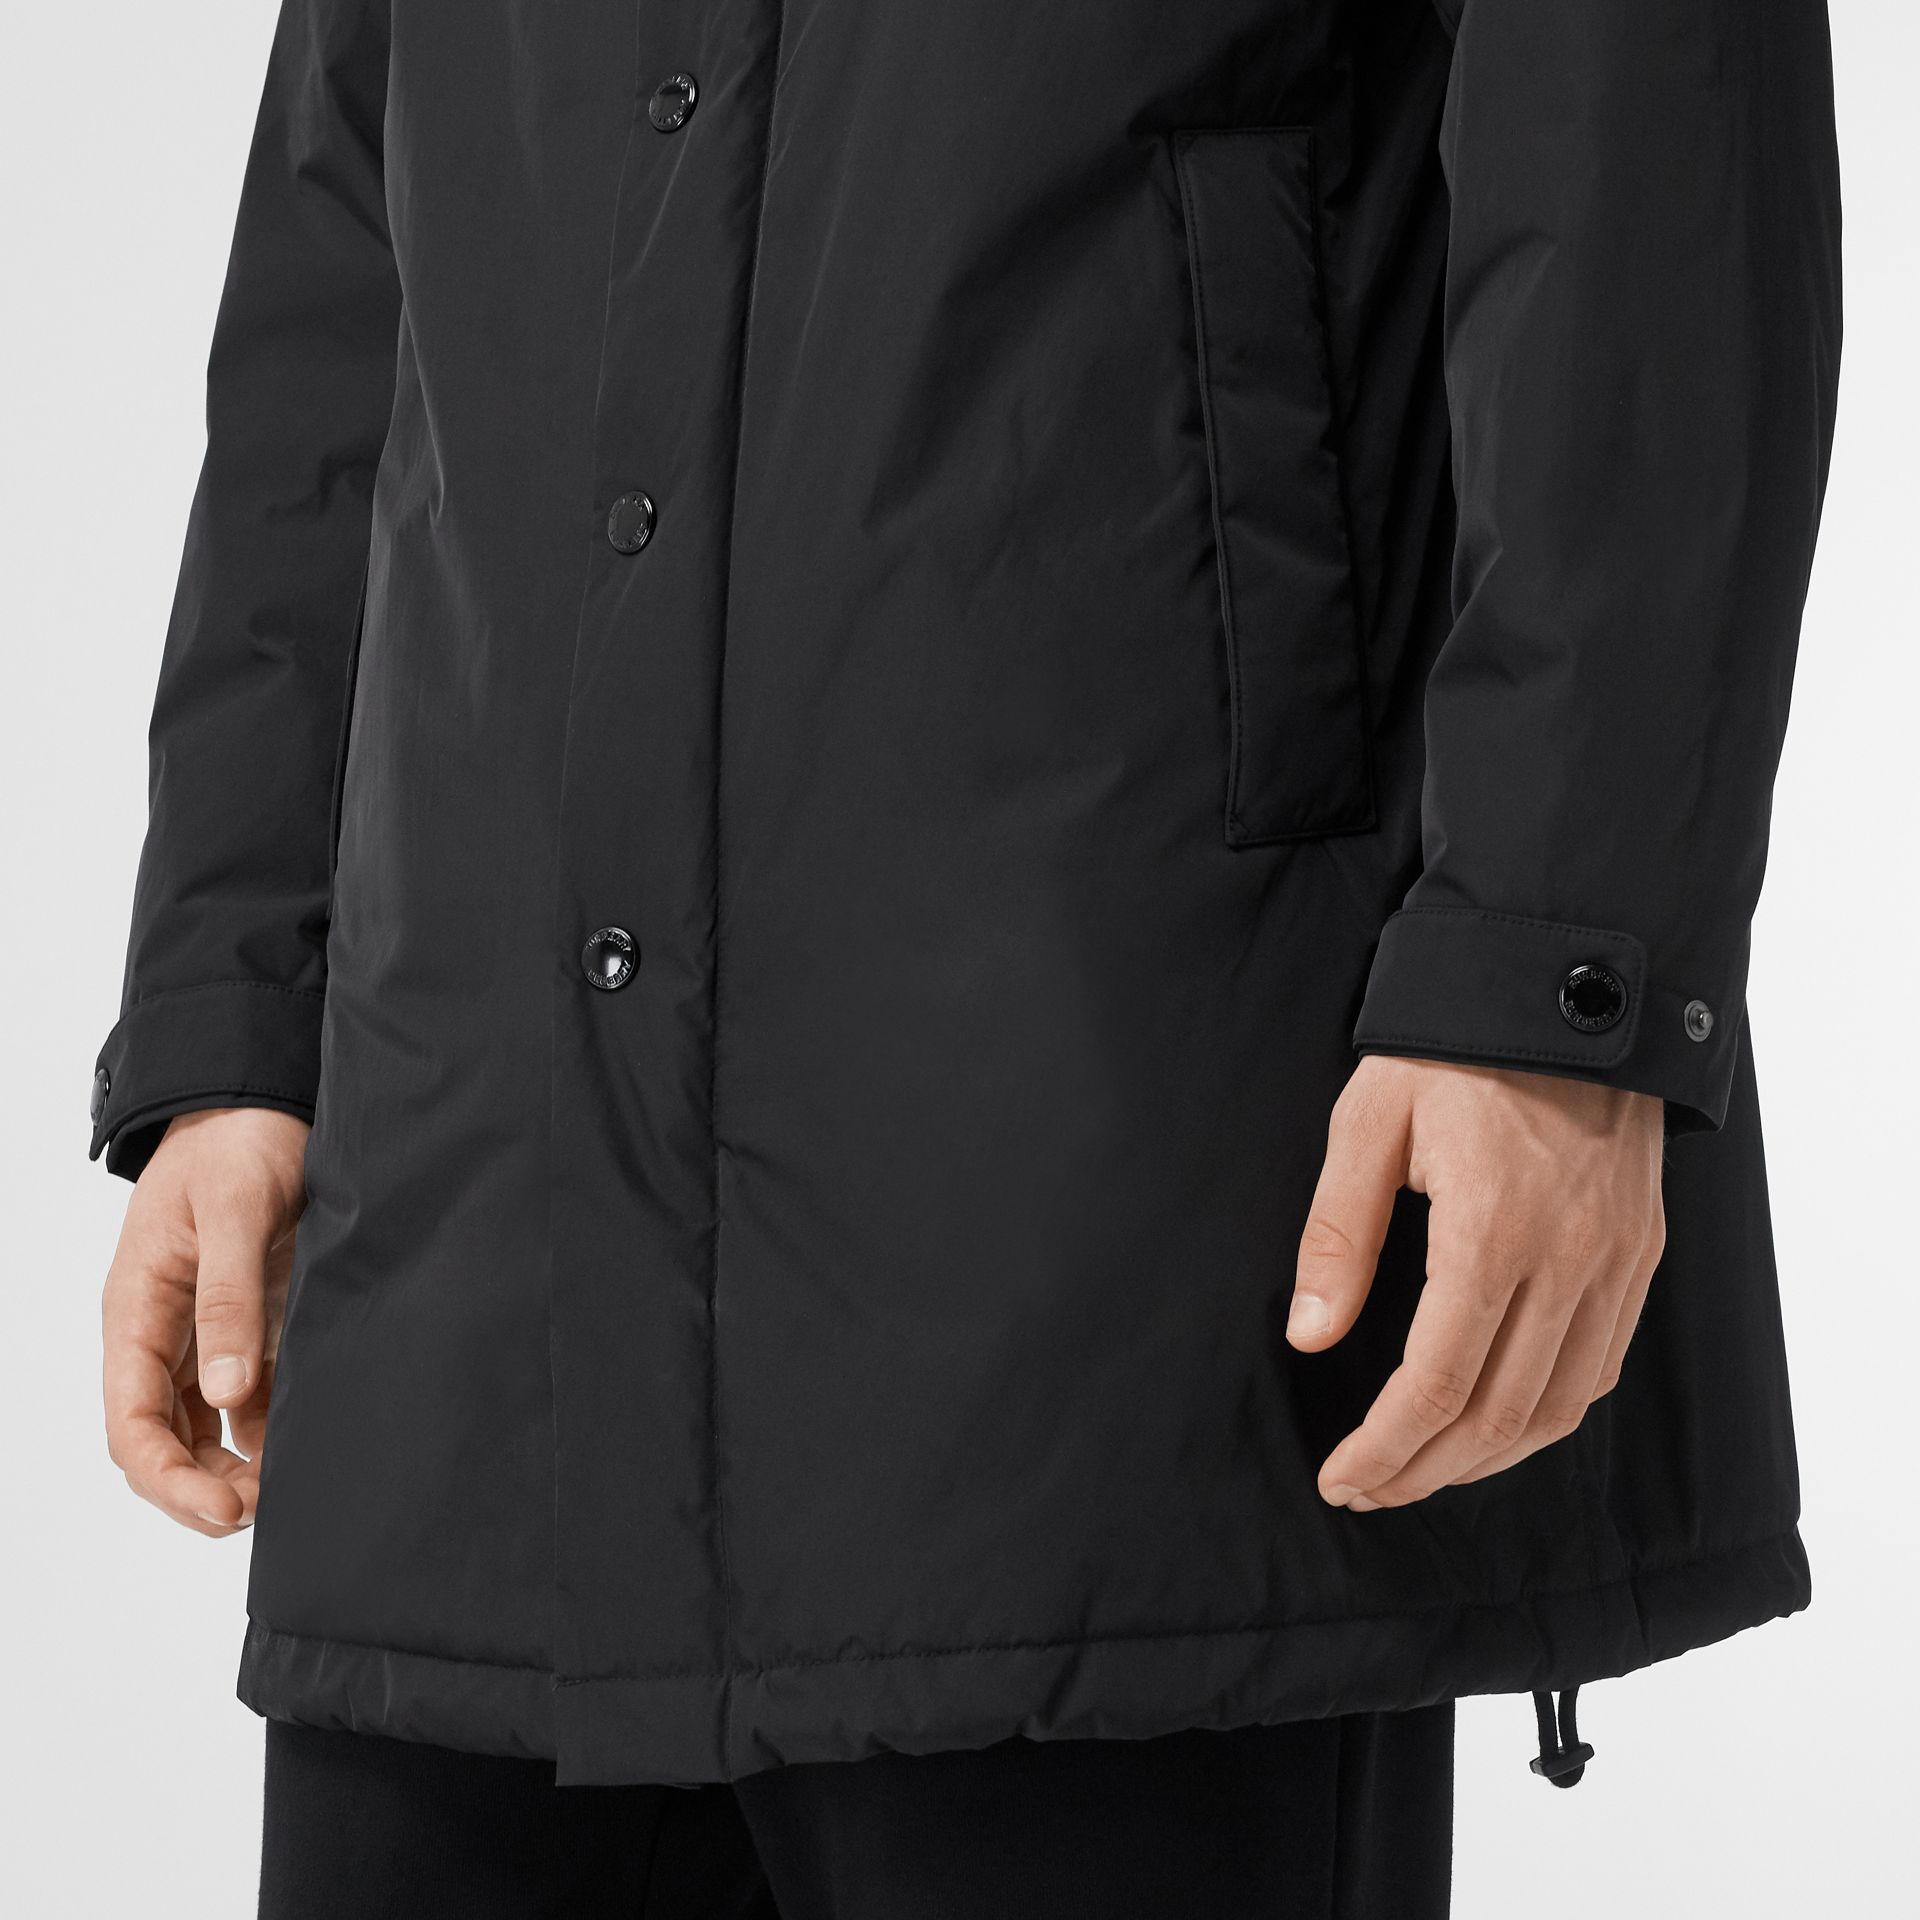 Monogram Motif Nylon Twill Hooded Coat in Black - Men | Burberry United States - gallery image 4